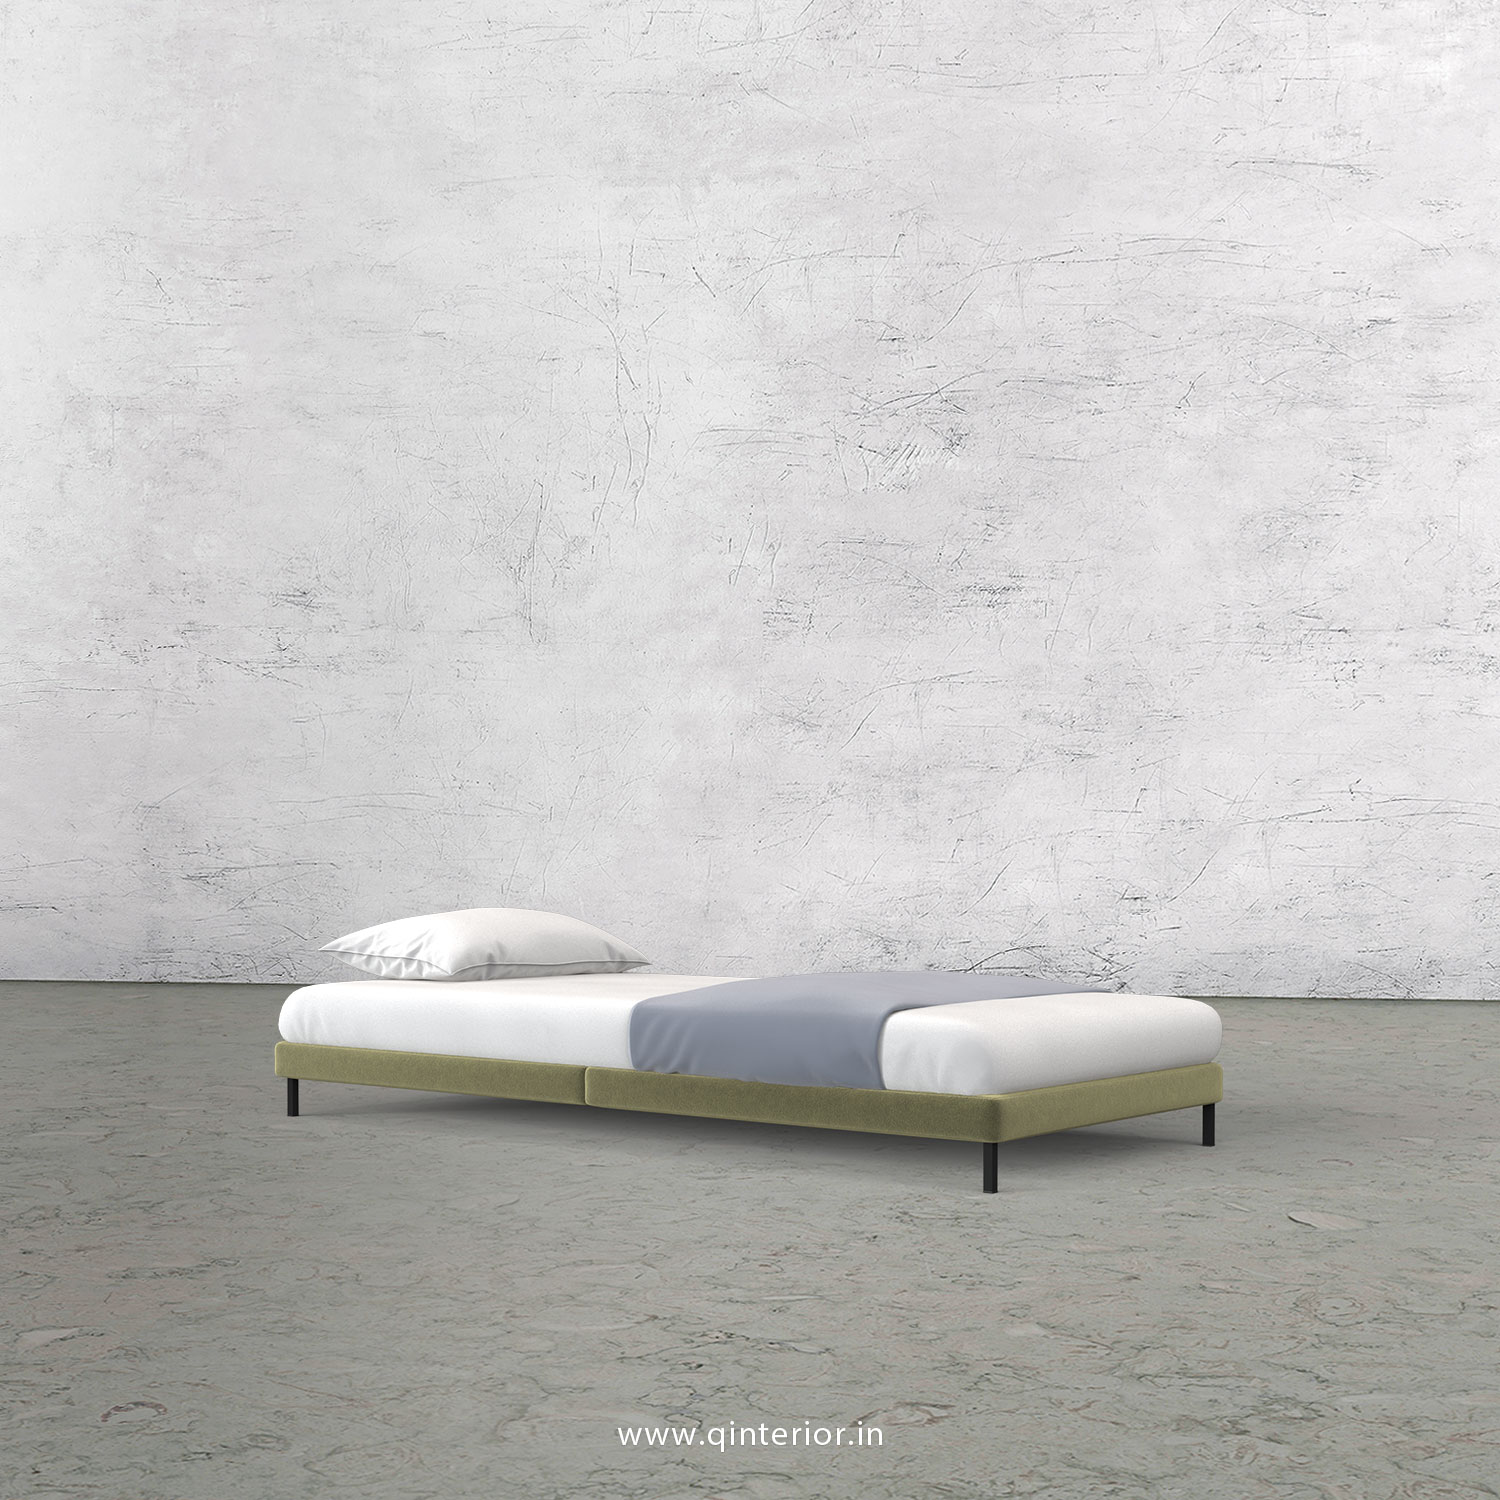 PUNTO Single Bed in Velvet Fabric - SBD006 VL04